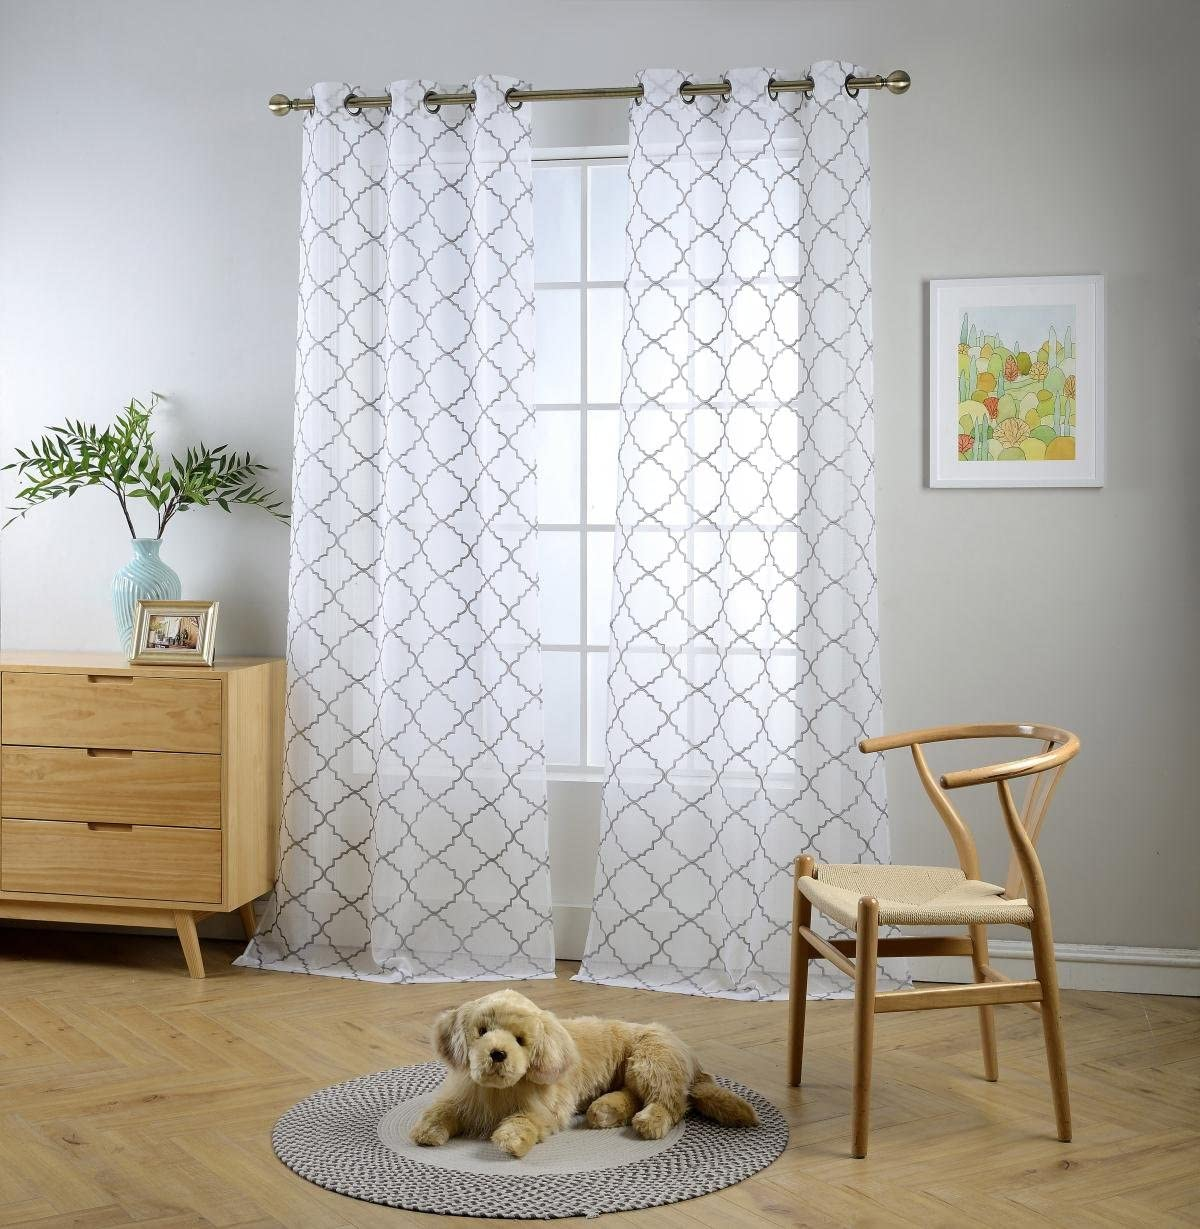 MIUCO White Sheer Curtains Embroidery Trellis Design Grommet Curtains 95 Inches Long for French Doors 2 Panels 2 x 37 Wide x 95 Long White Silver Embroidery